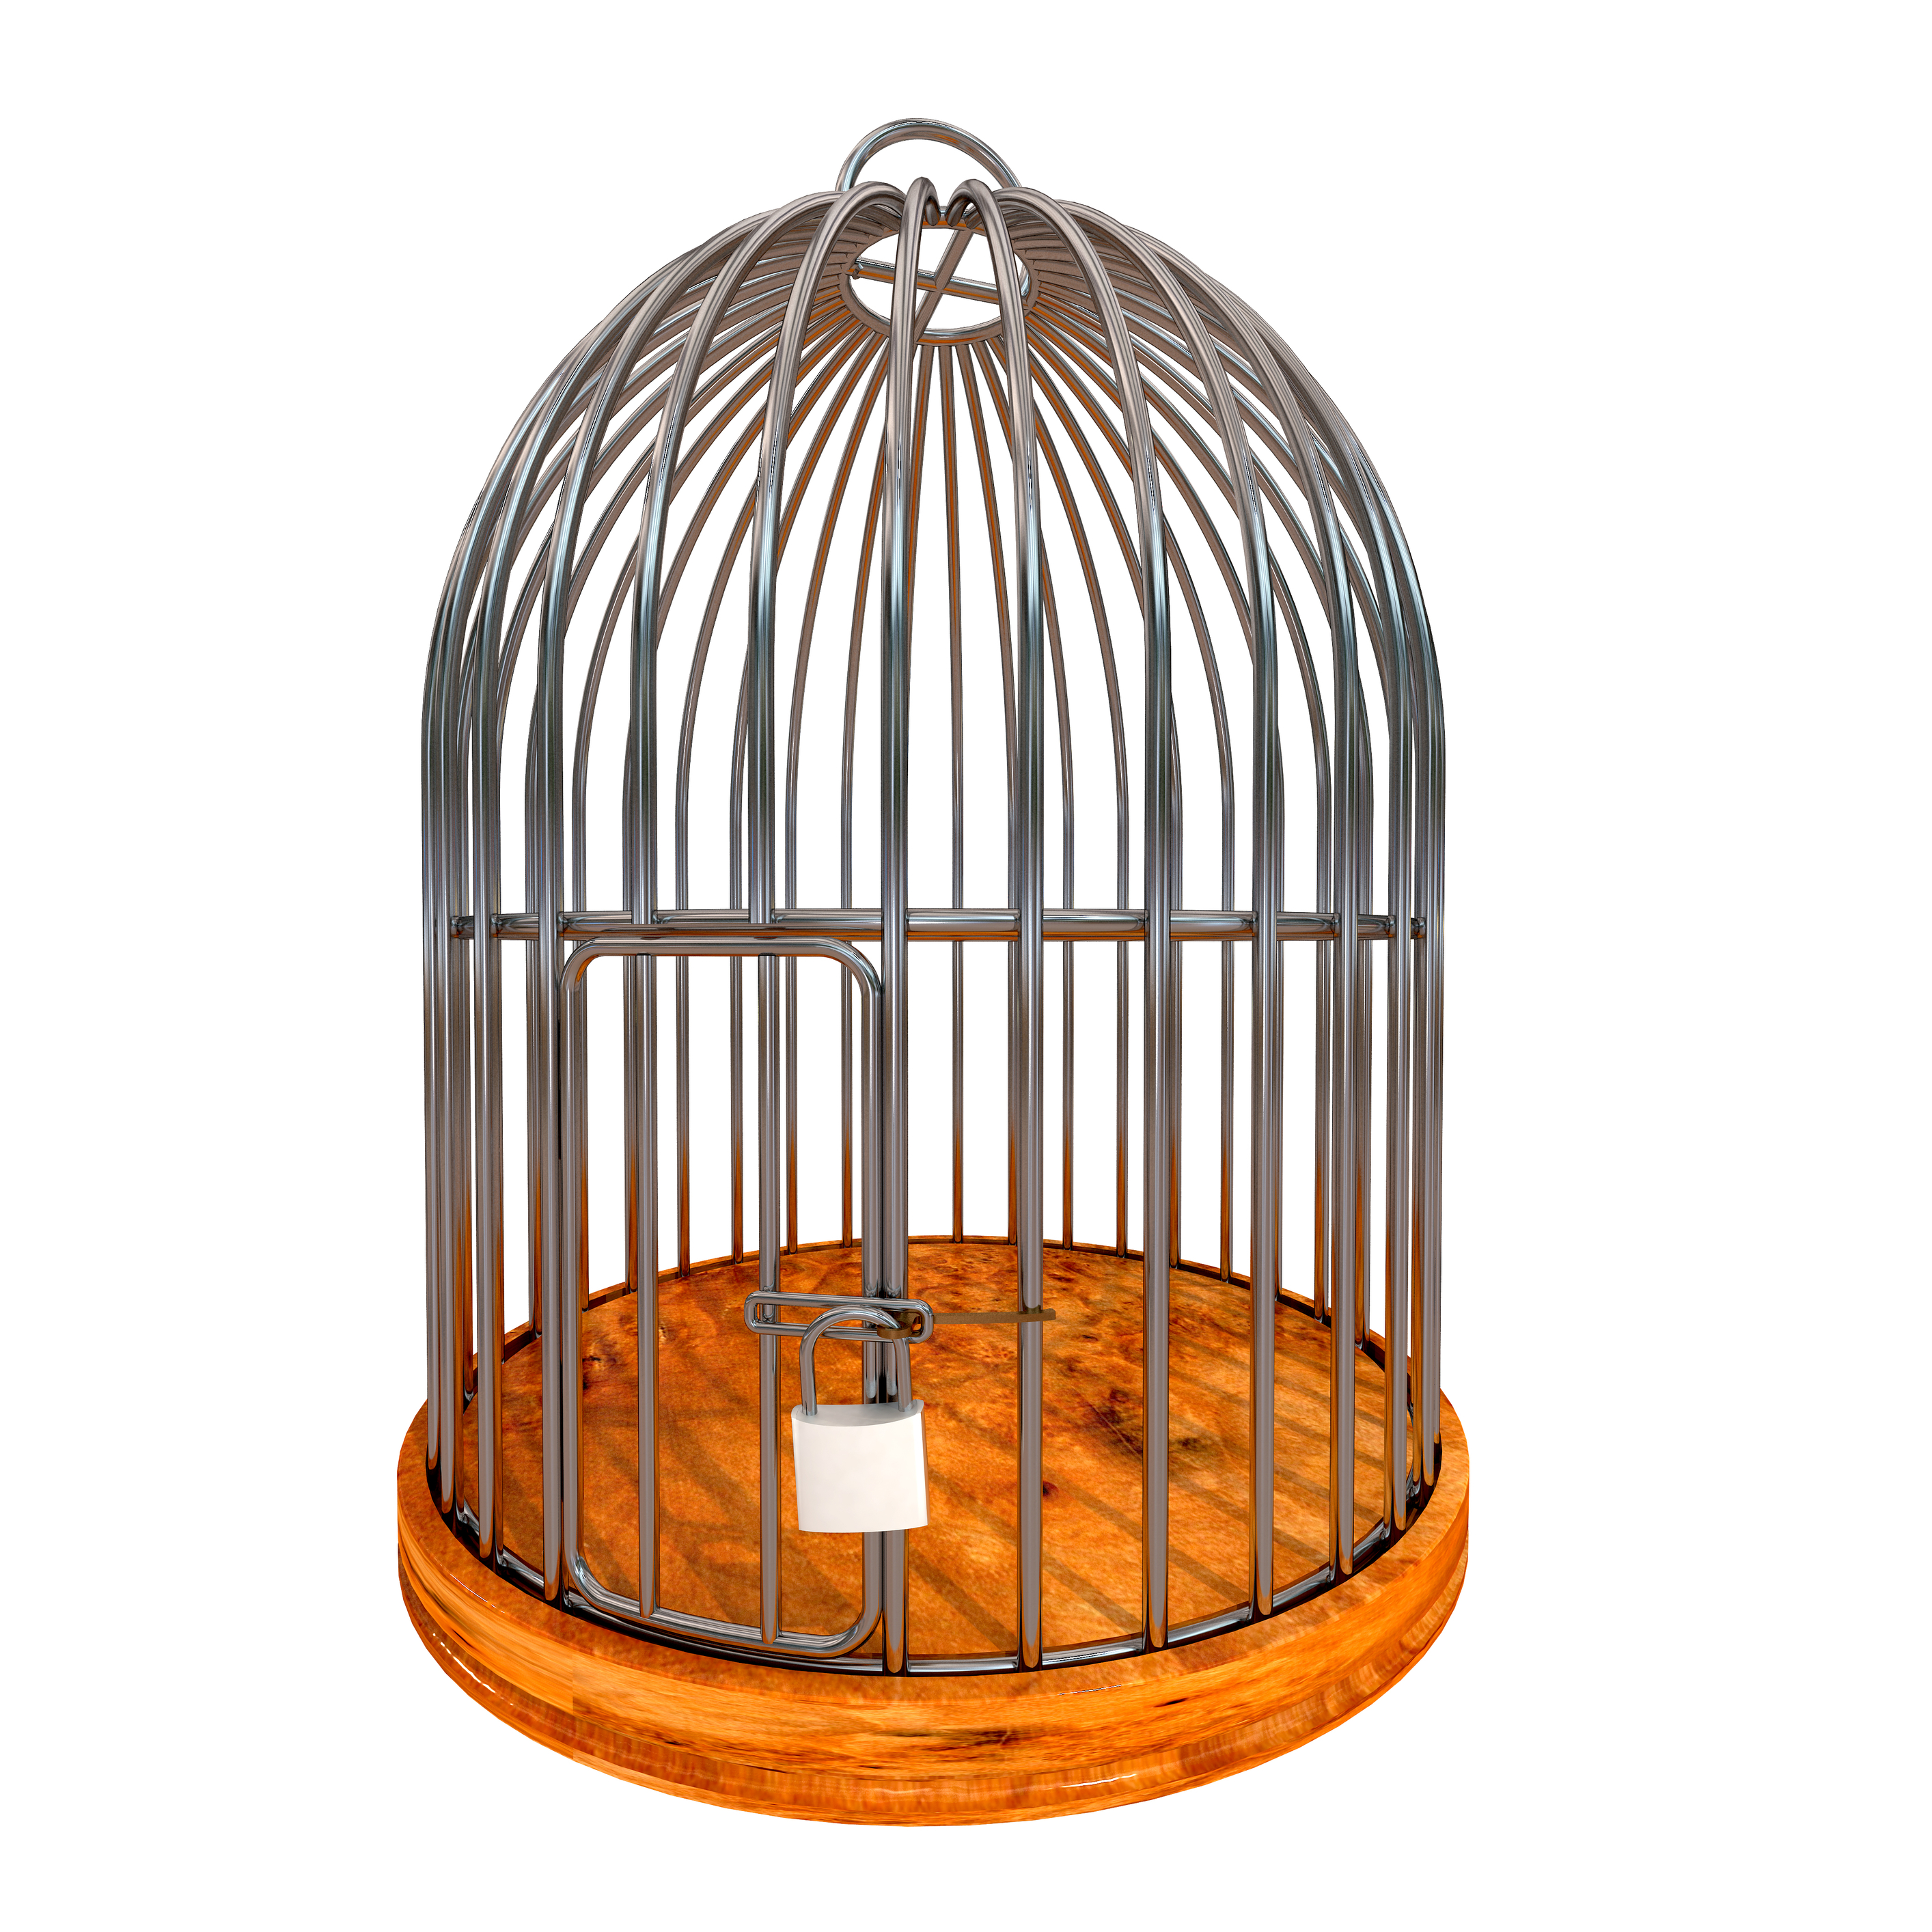 Stainless Steel Bird Cage Singapore